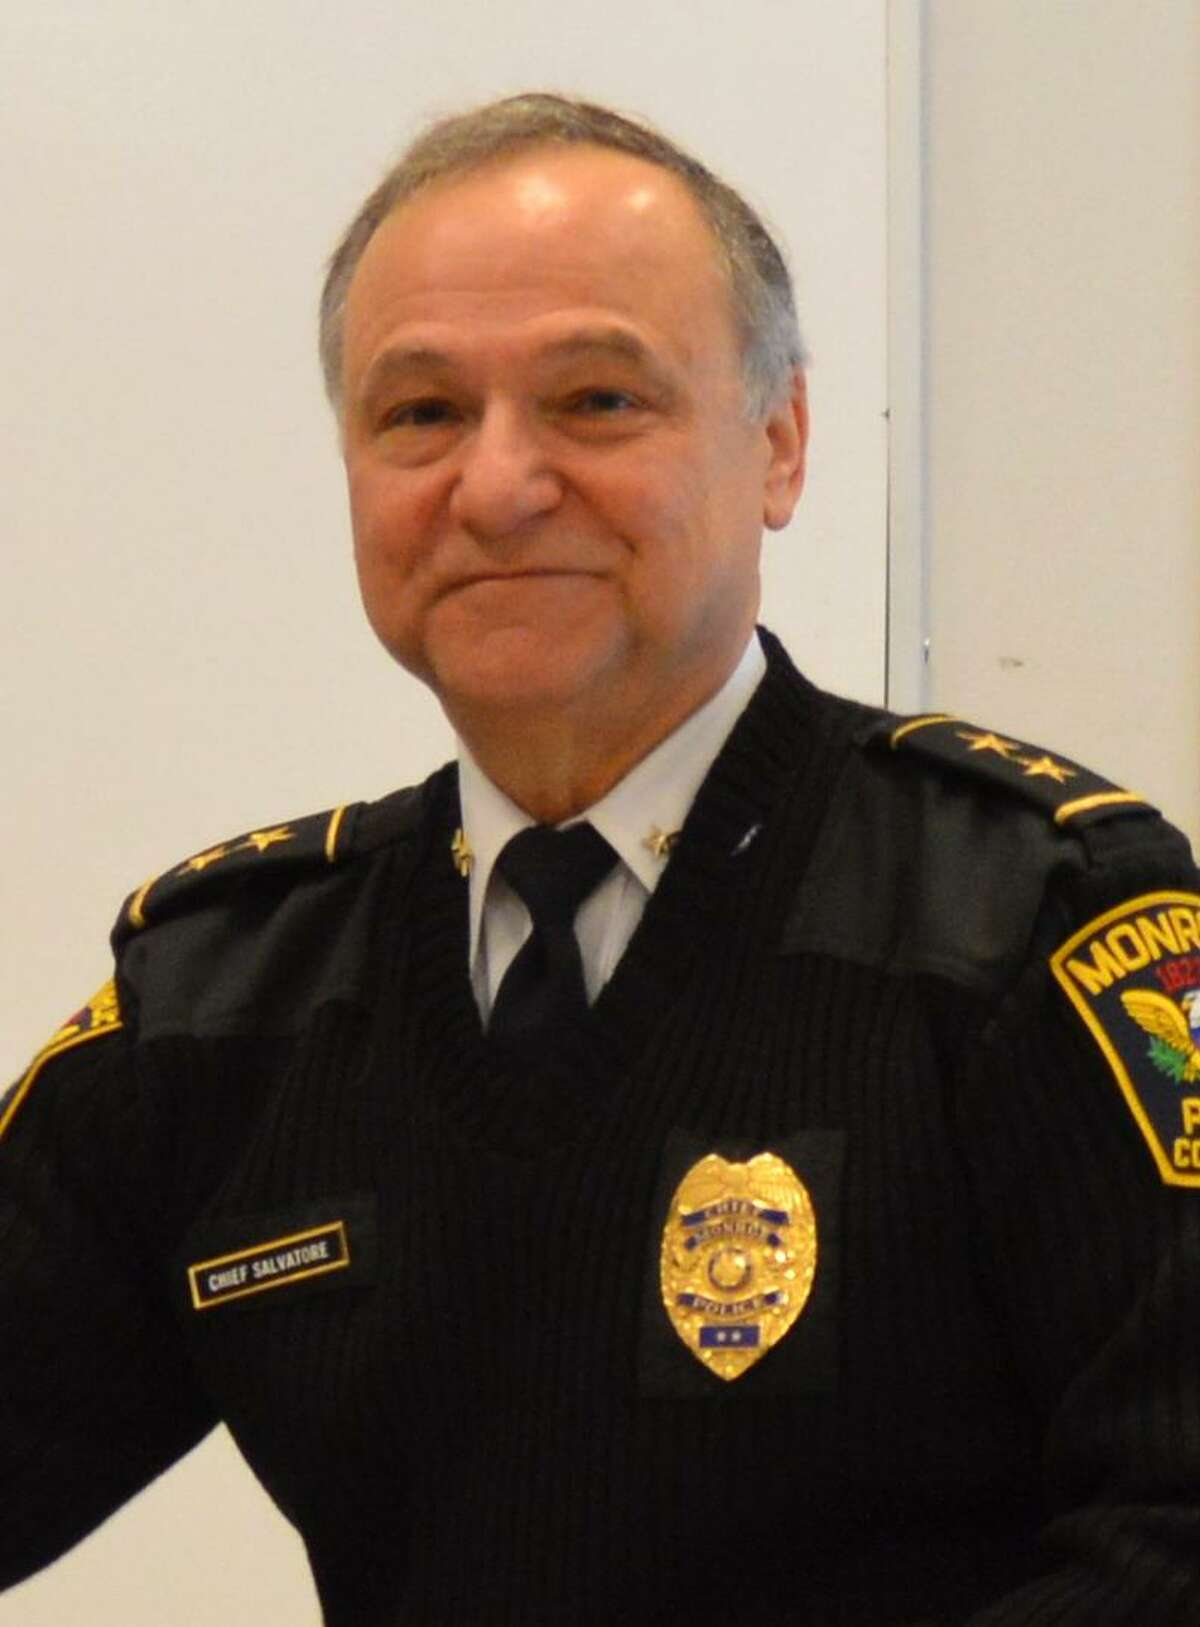 Chief John L. Salvatore of the Monroe Police Department.